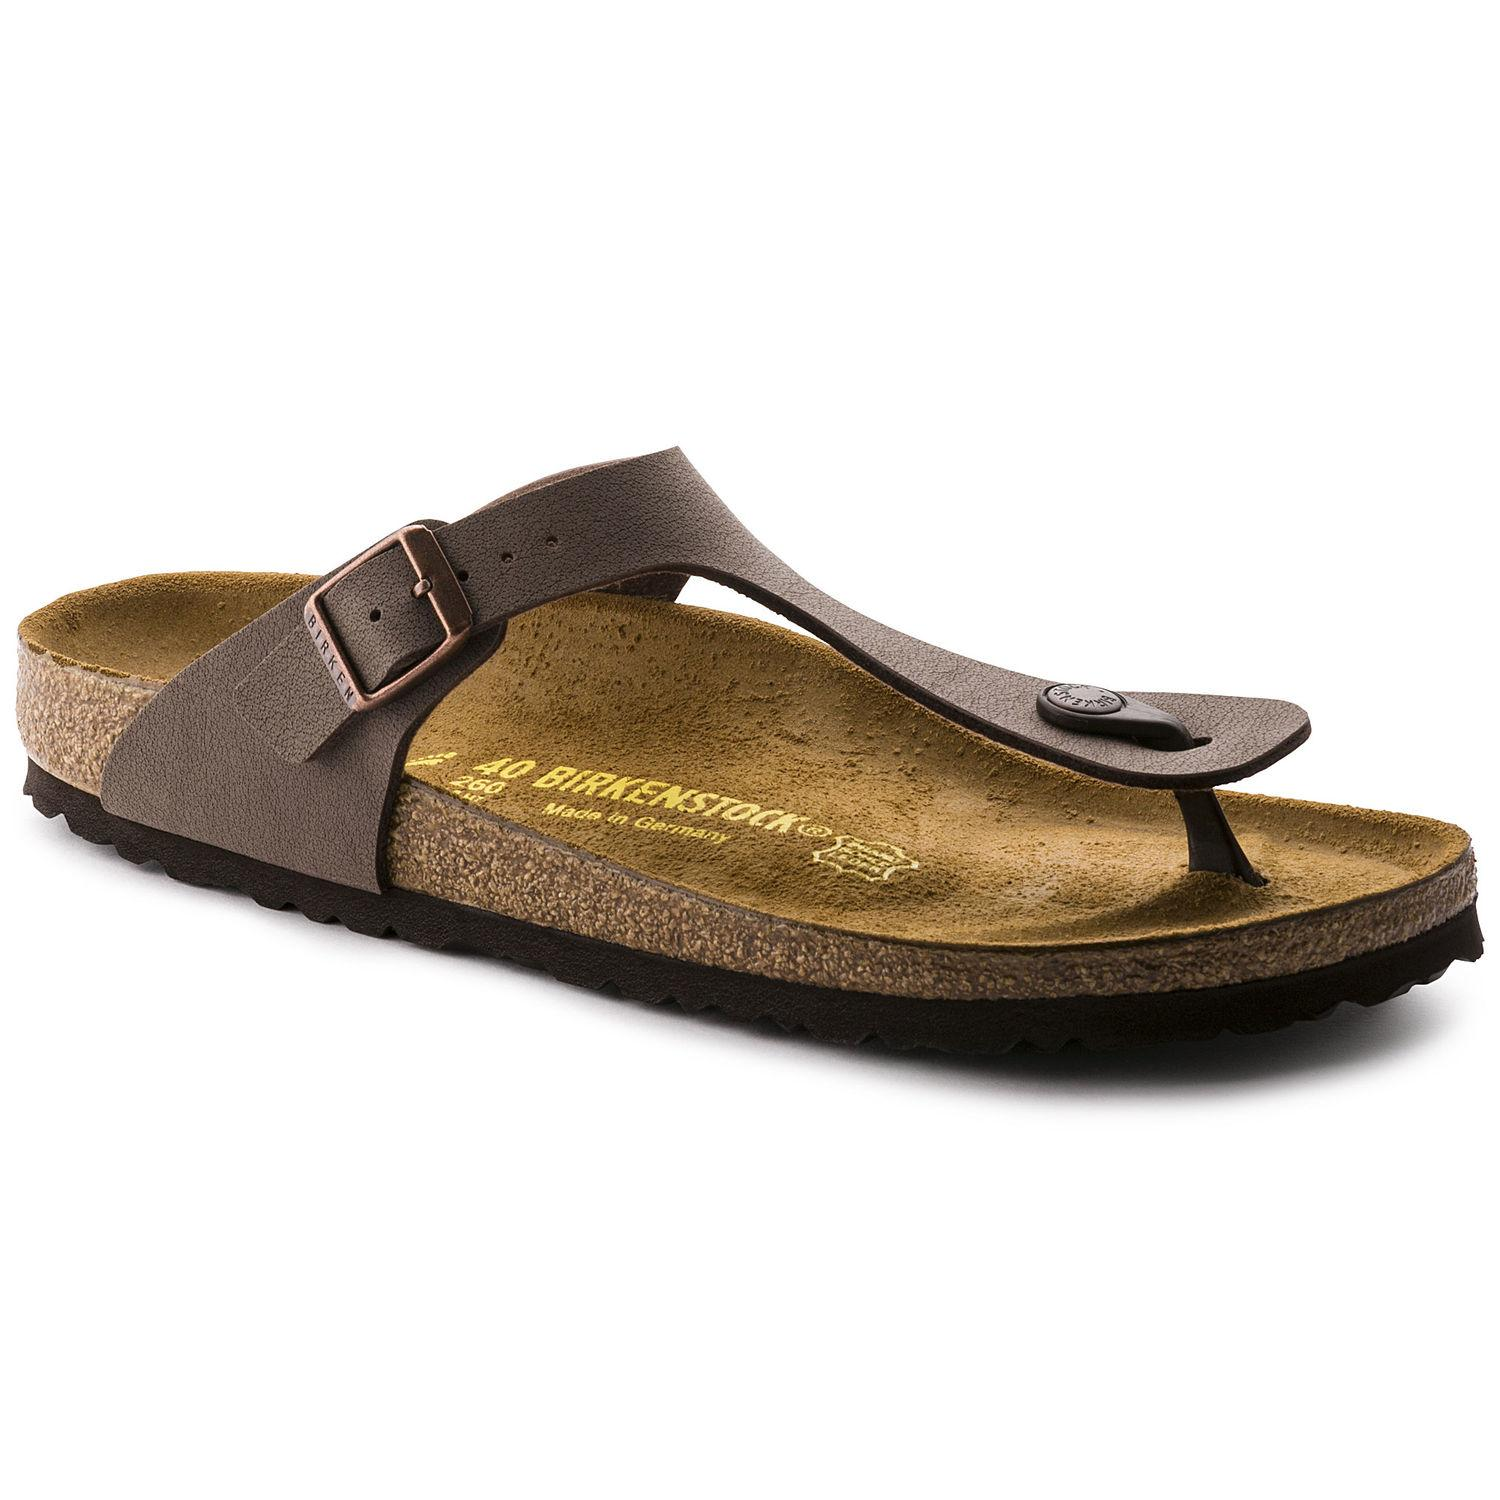 2a957d0264f Birkenstock Gizeh Birko-Flor Nubuck Soft Leather Sandals Mocca colour